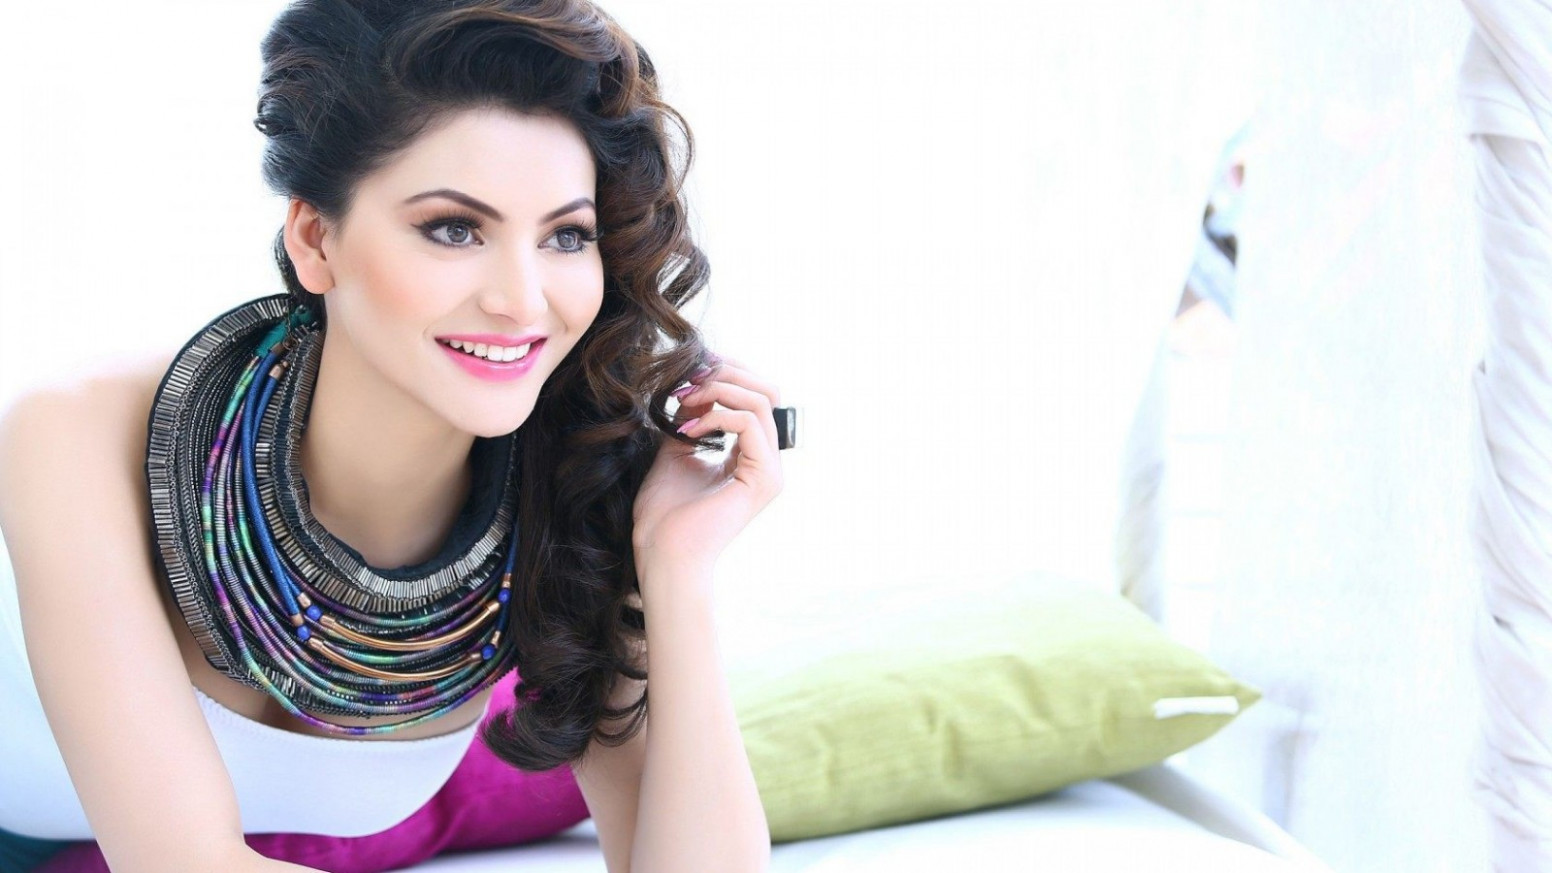 Bollywood Actress Urvashi Rautela Desktop Wallpaper – HD ...